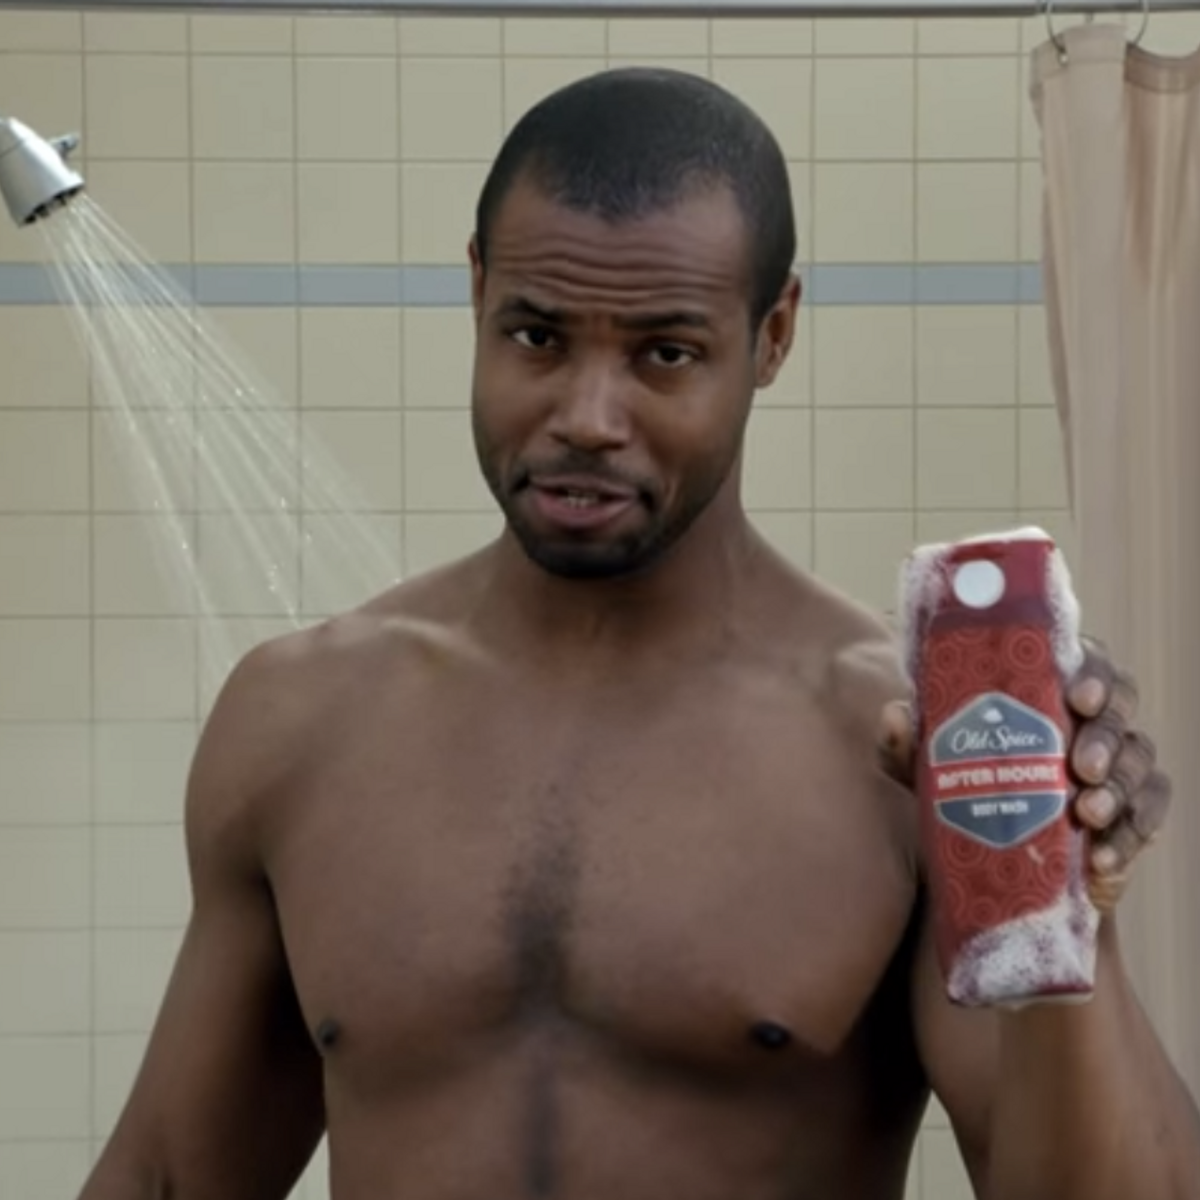 What Went Viral 5 Years Ago Today Old Spice Guy Salon Com